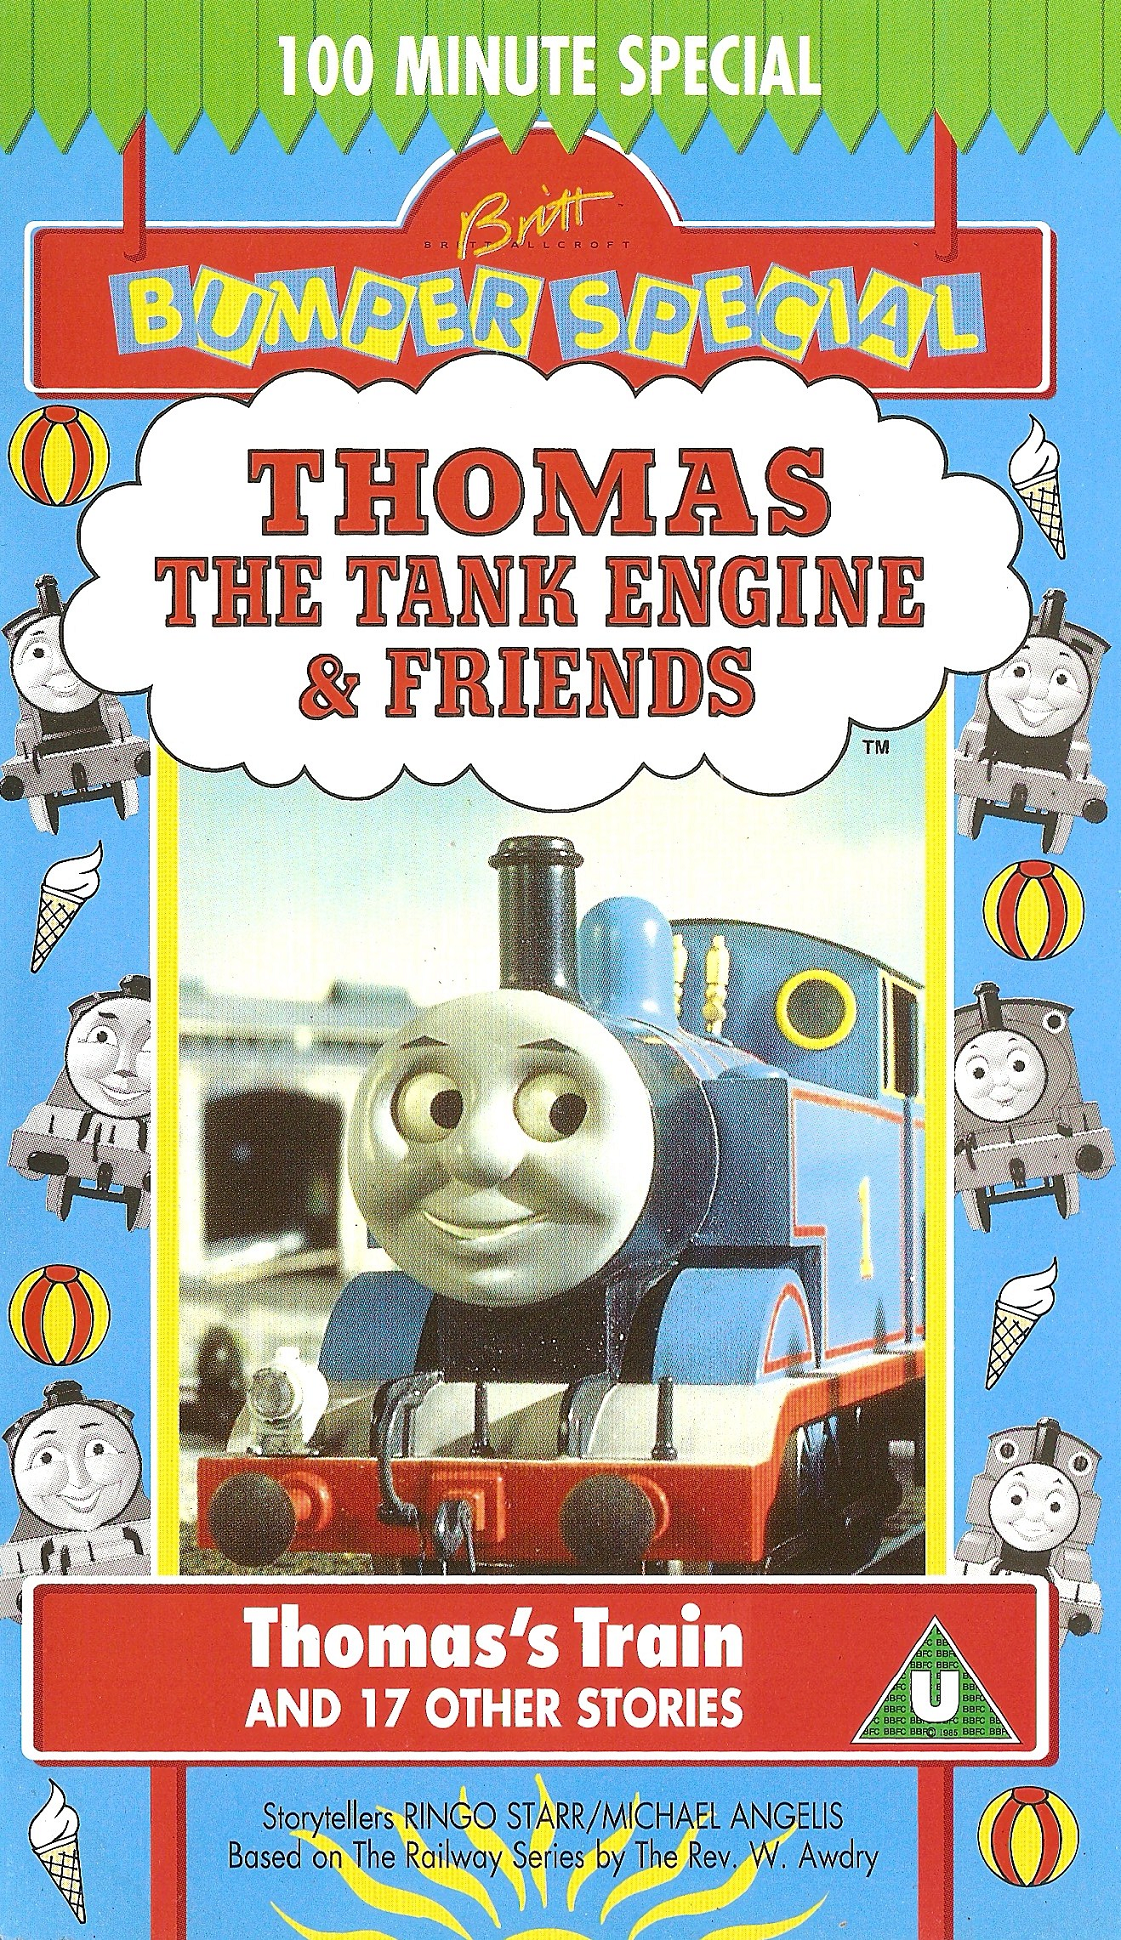 Thomas' Train and 17 other stories